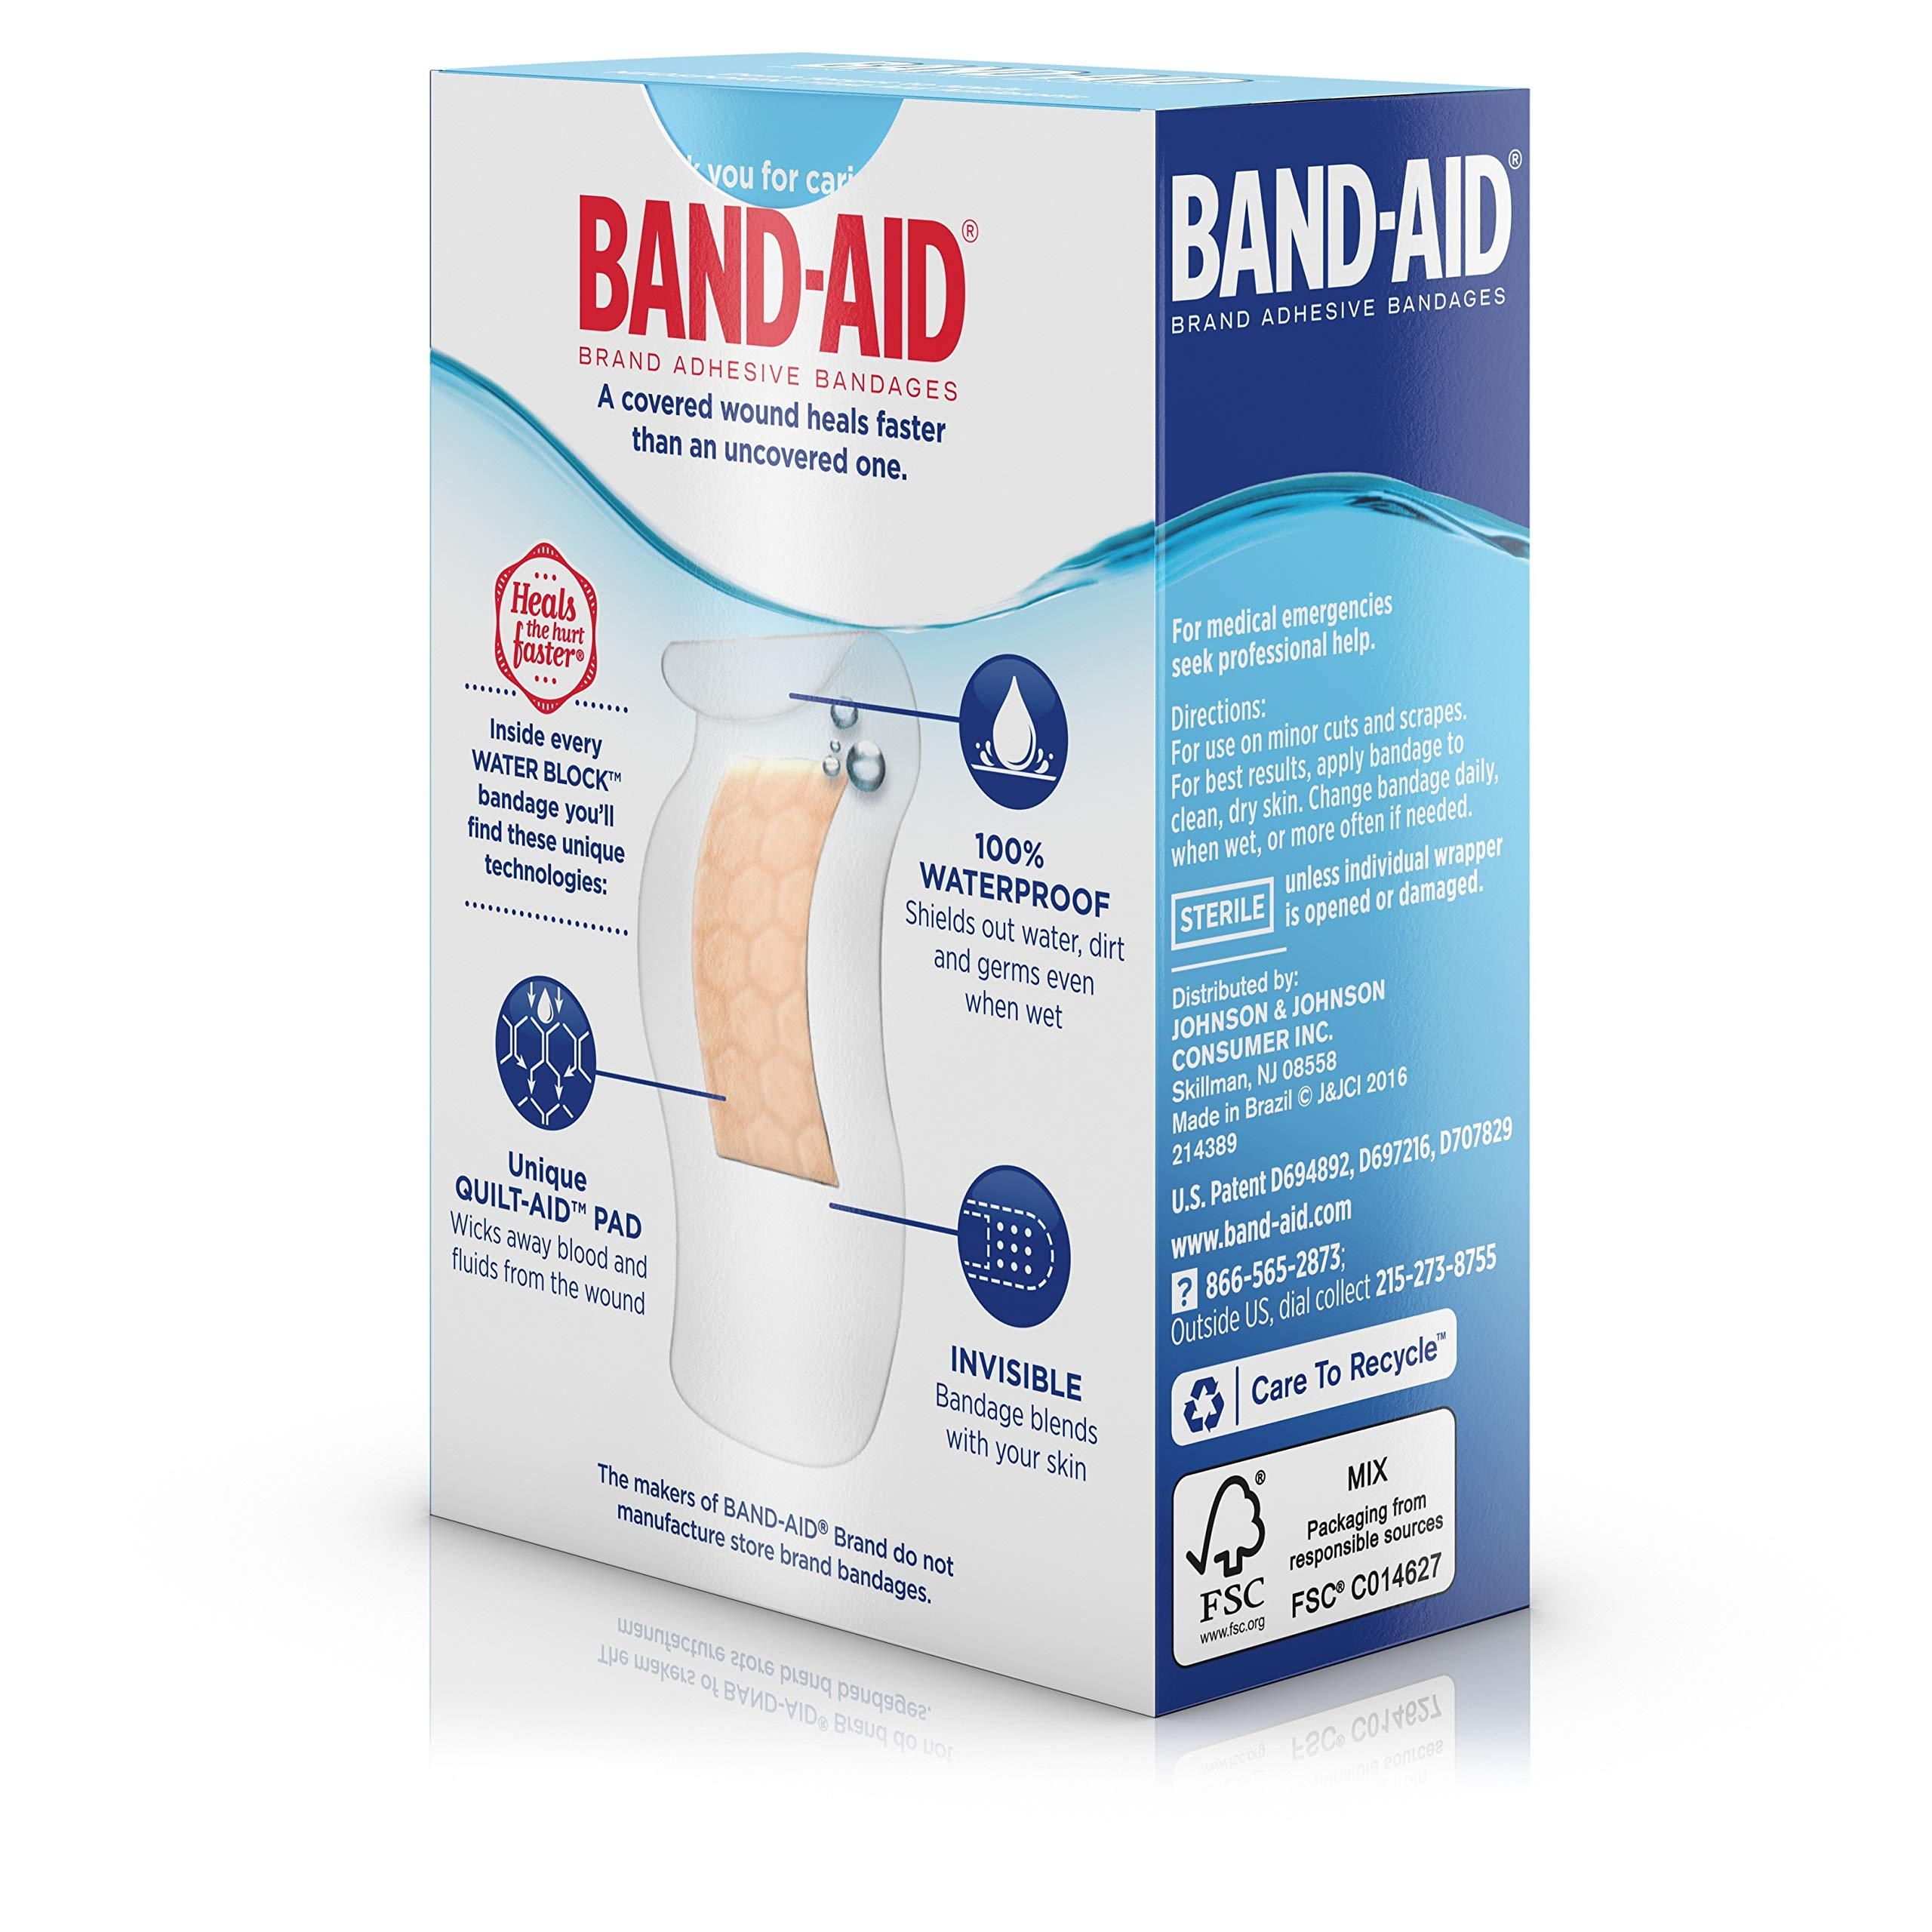 Band-Aid Brand Water Block Plus Waterproof Clear Adhesive Bandages for Minor Cuts and Scrapes, 30 ct (6 Pack) by Band-Aid (Image #10)